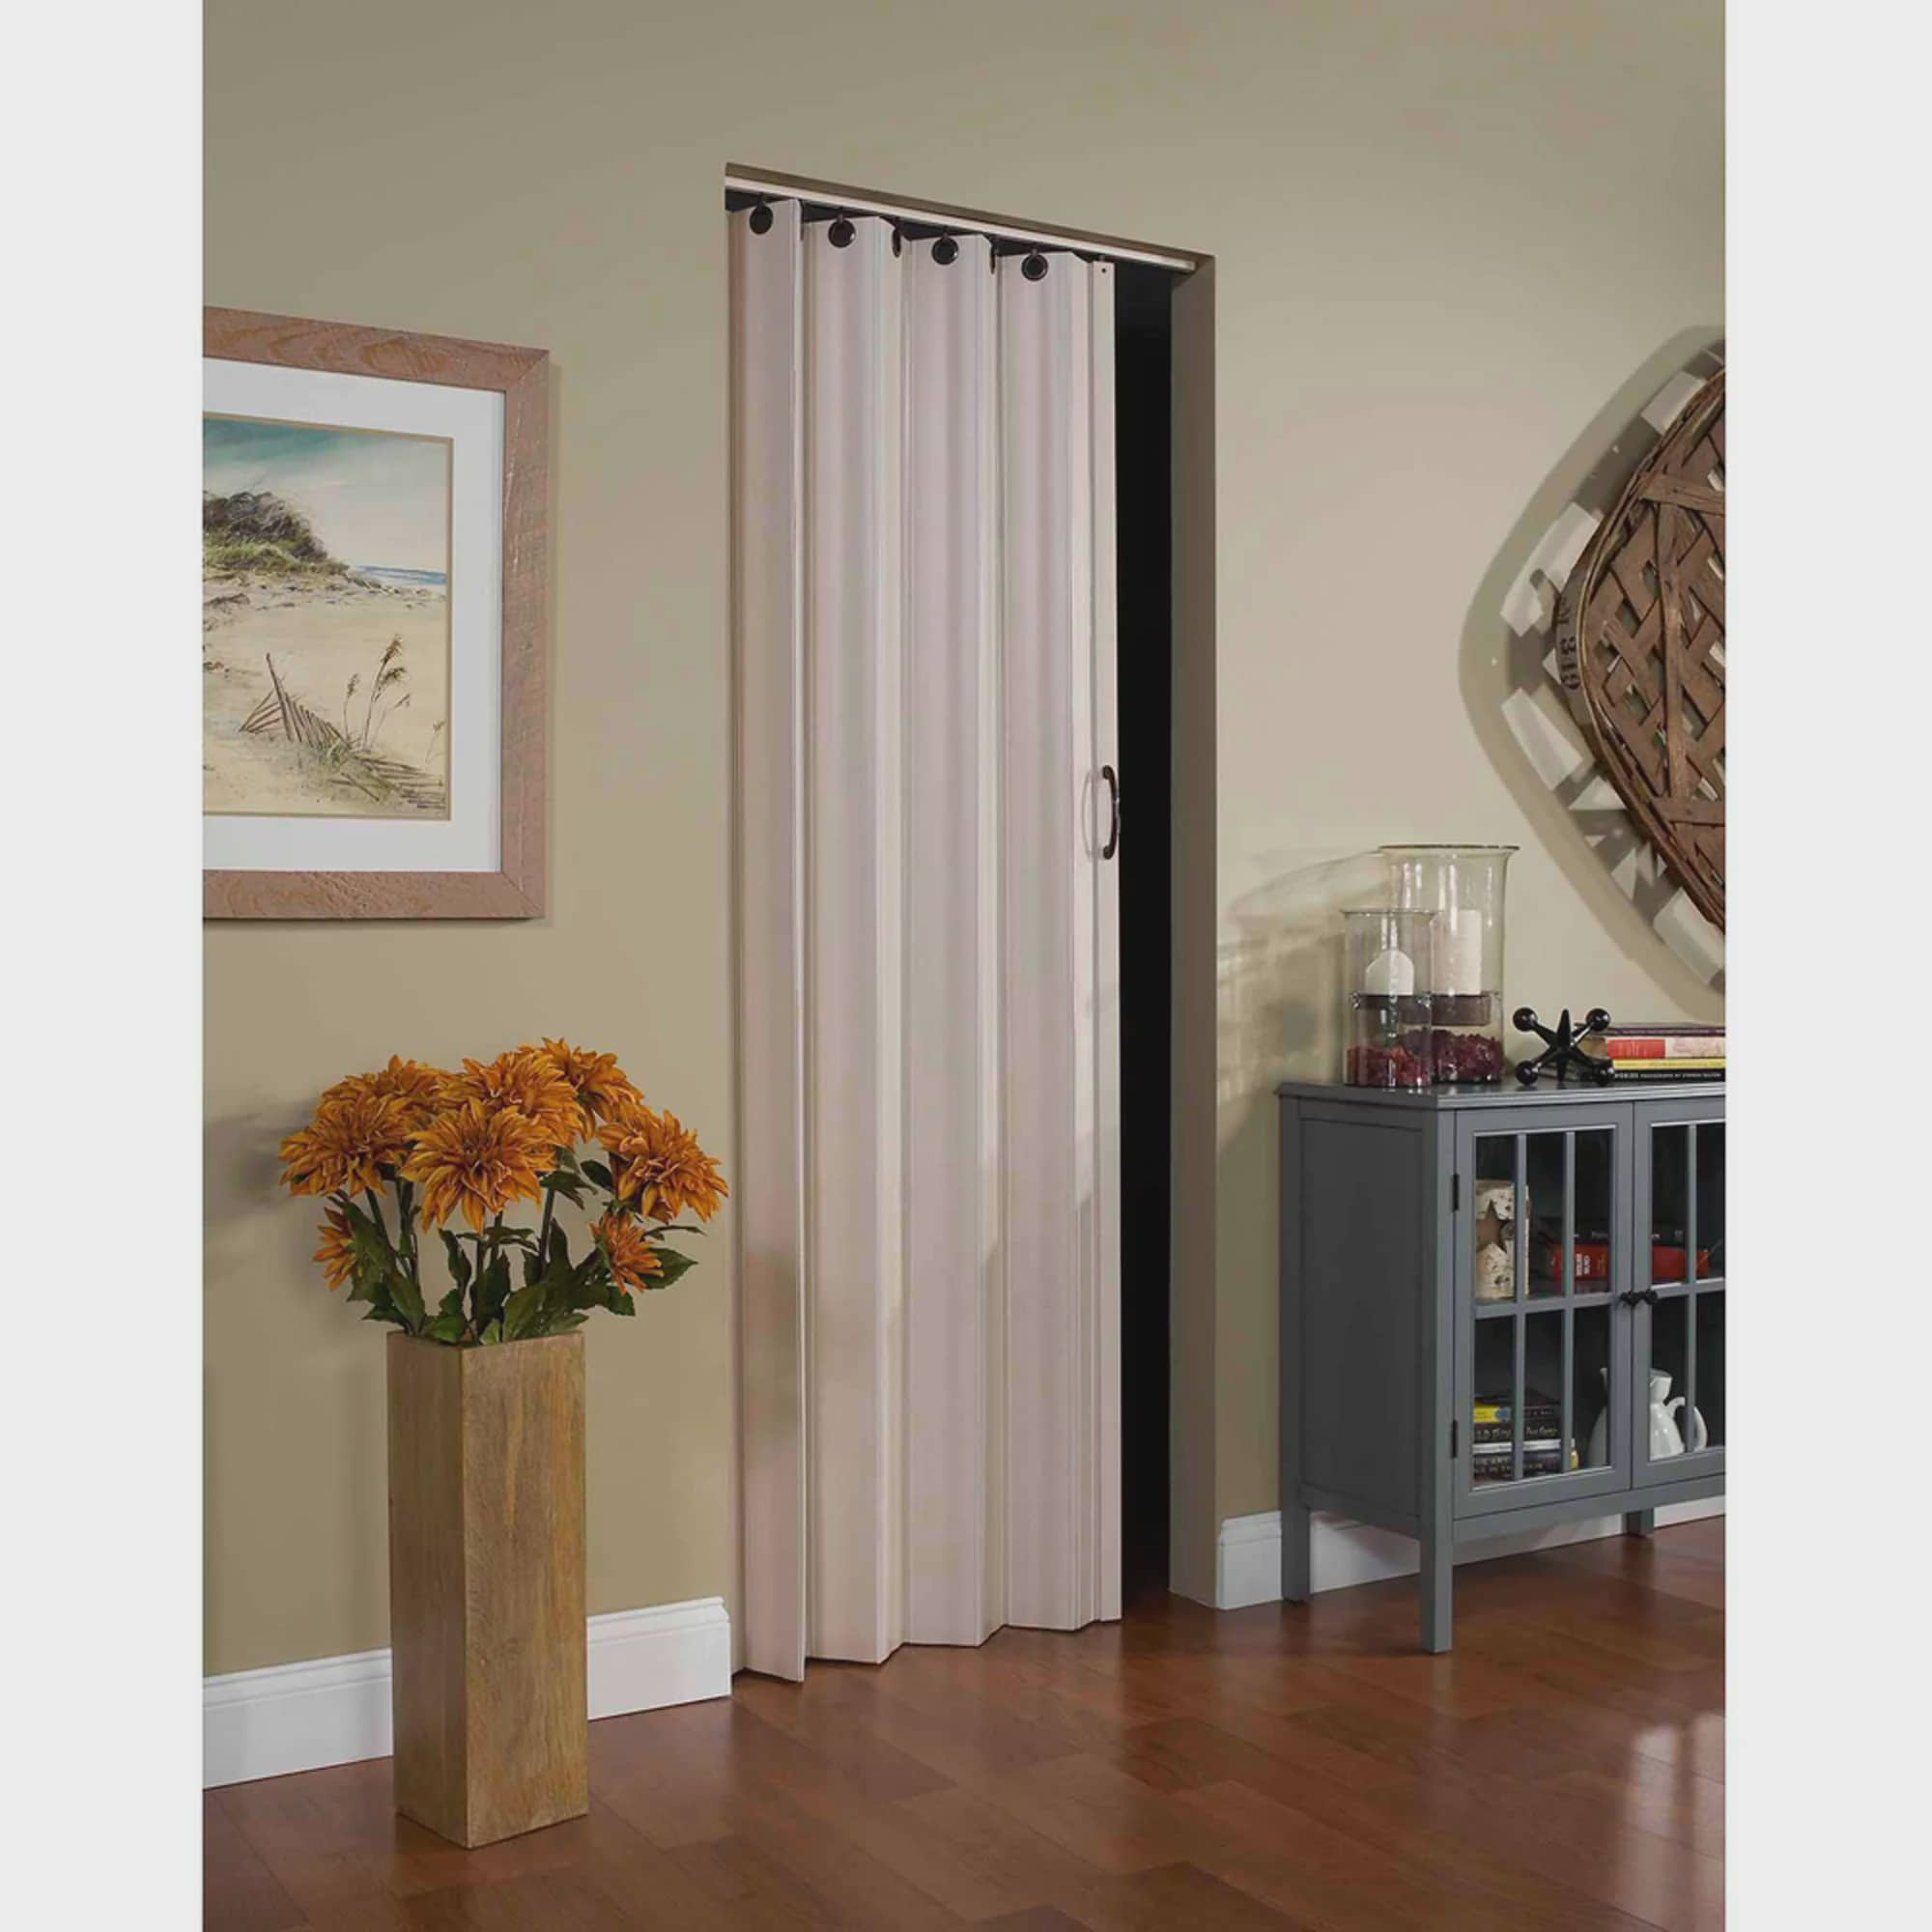 Accordion Glass Doors : Accordian doors best accordion ideas on